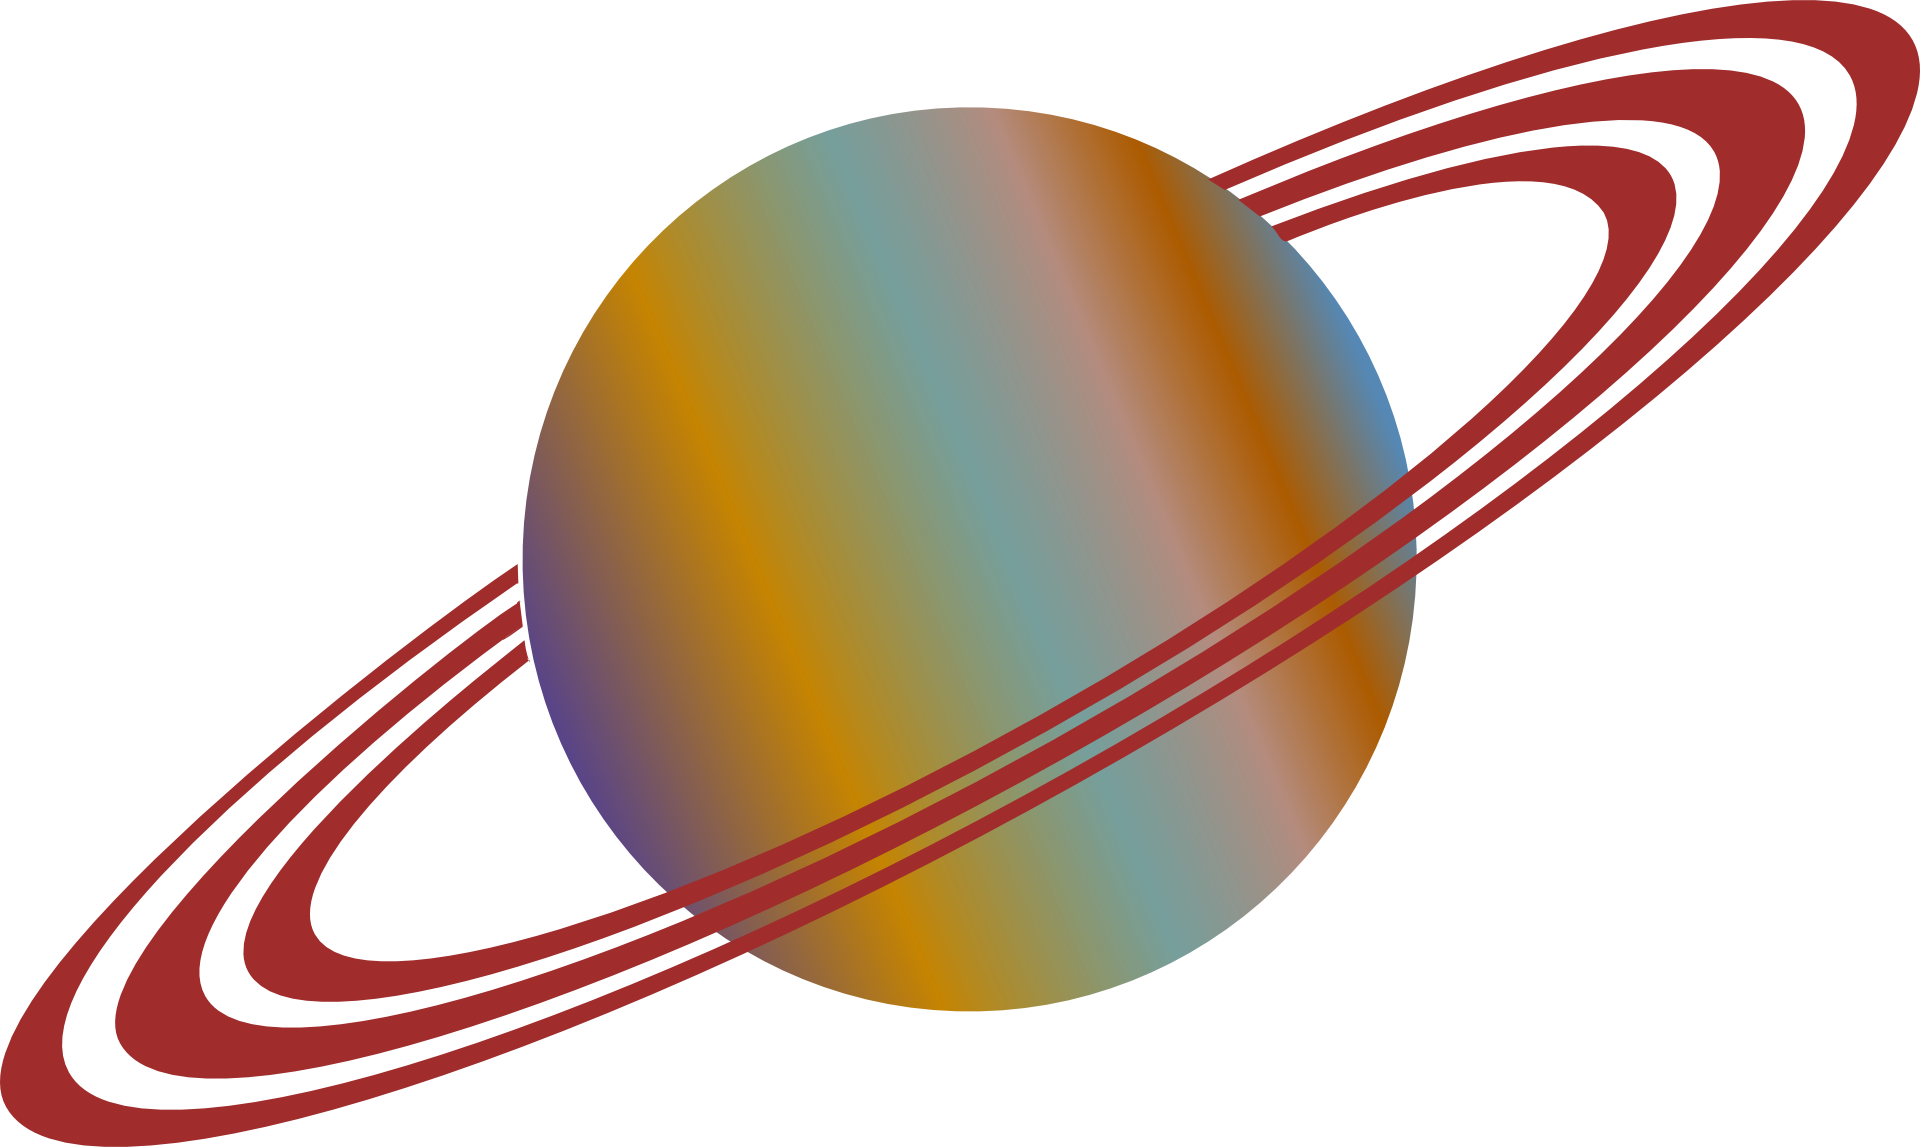 Planeten clipart planetsclip. Planet ring system rings